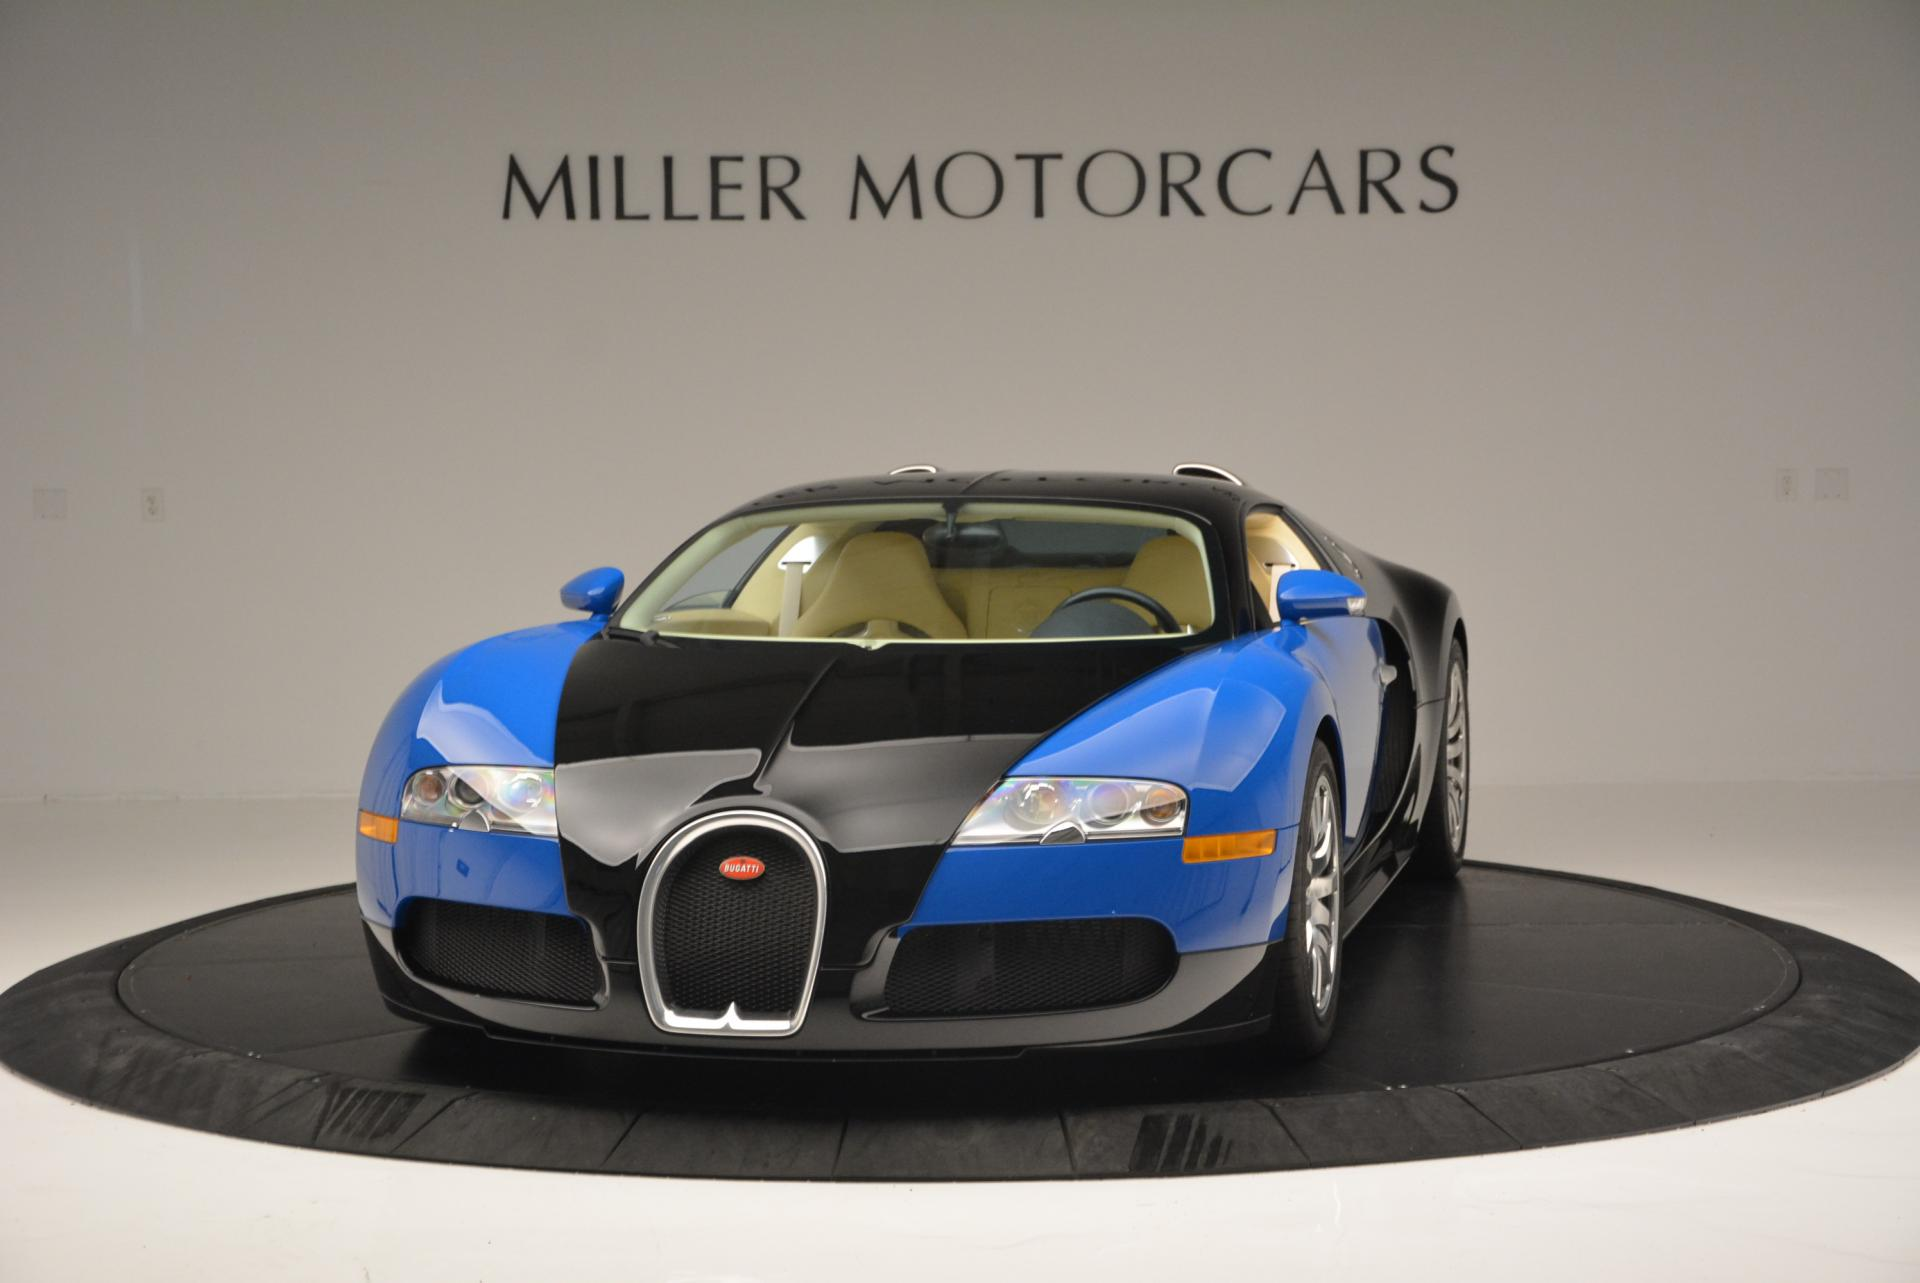 Used 2006 Bugatti Veyron 16.4 for sale Sold at Bugatti of Greenwich in Greenwich CT 06830 1